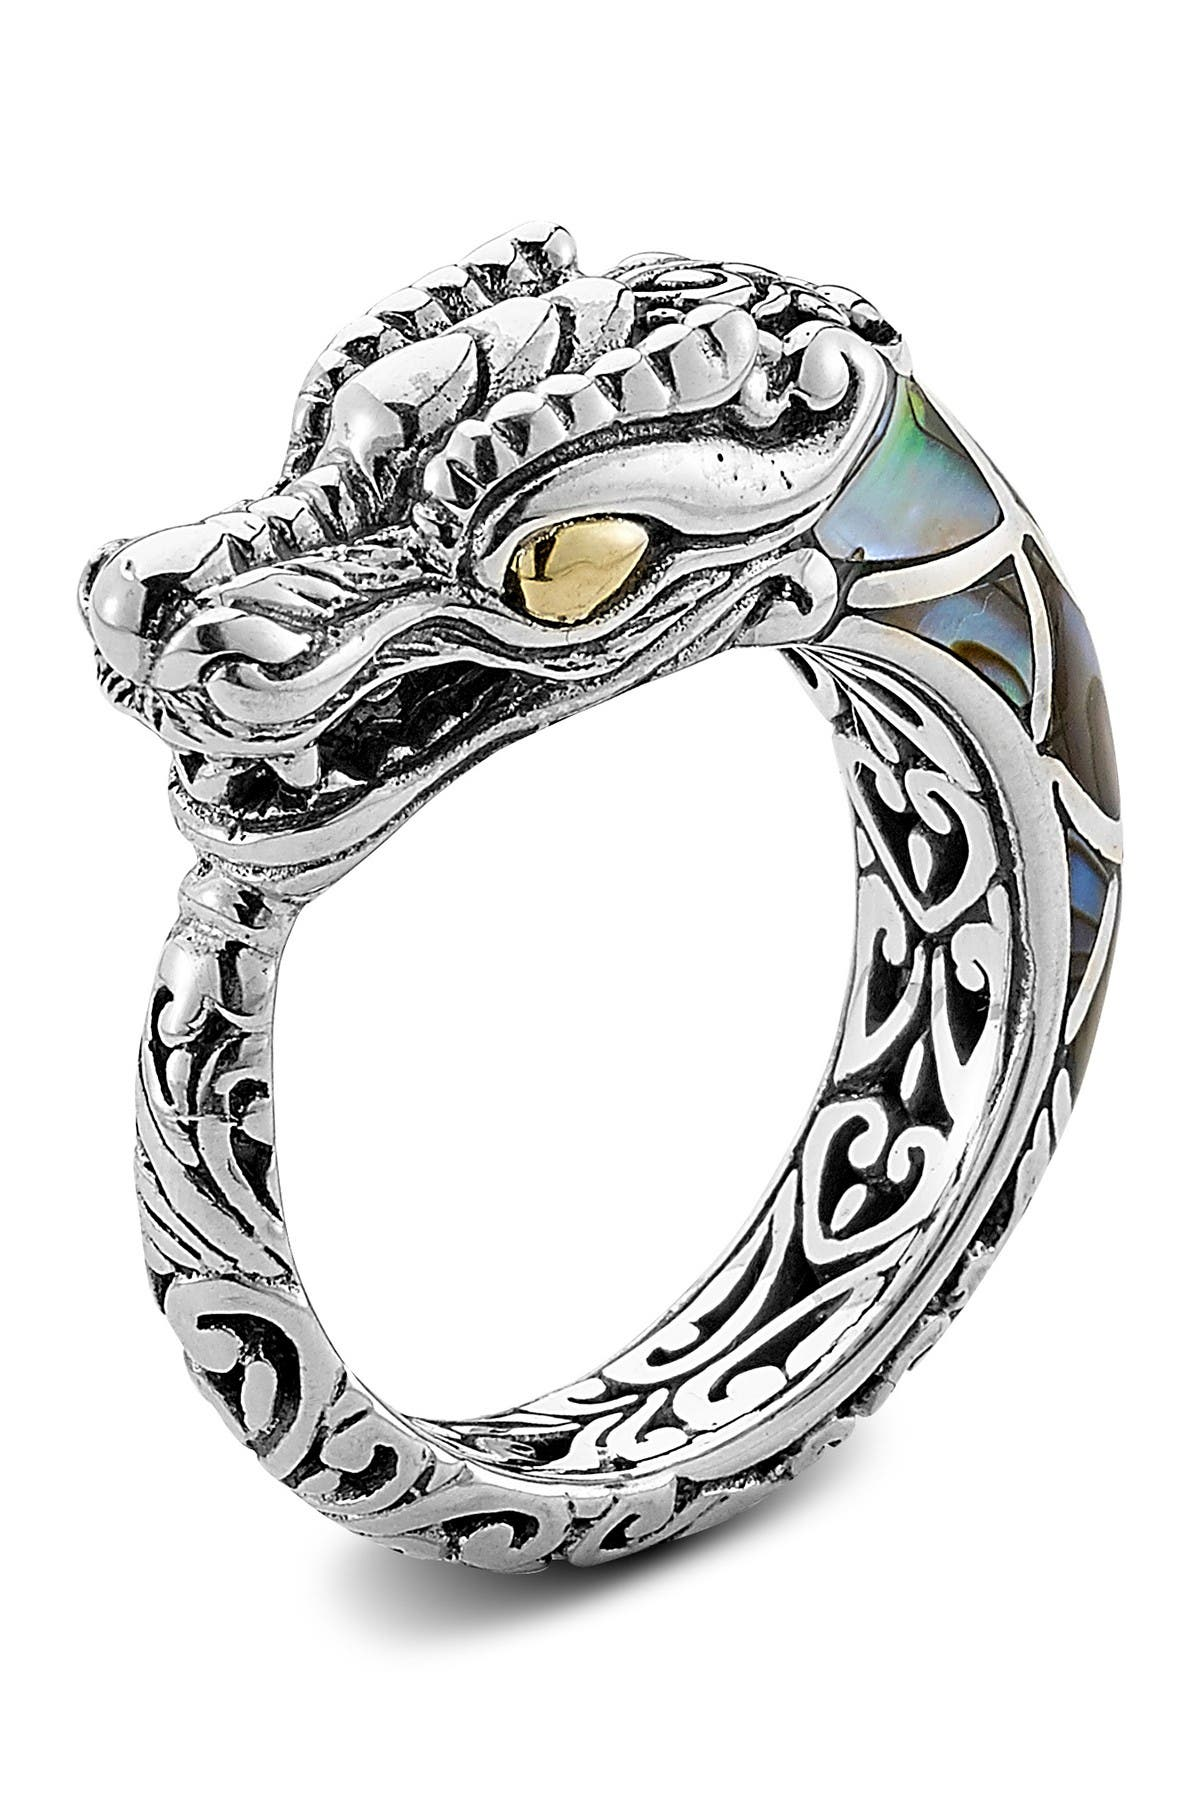 Image of Samuel B Jewelry Sterling Silver 18K Abalone Dragon Ring